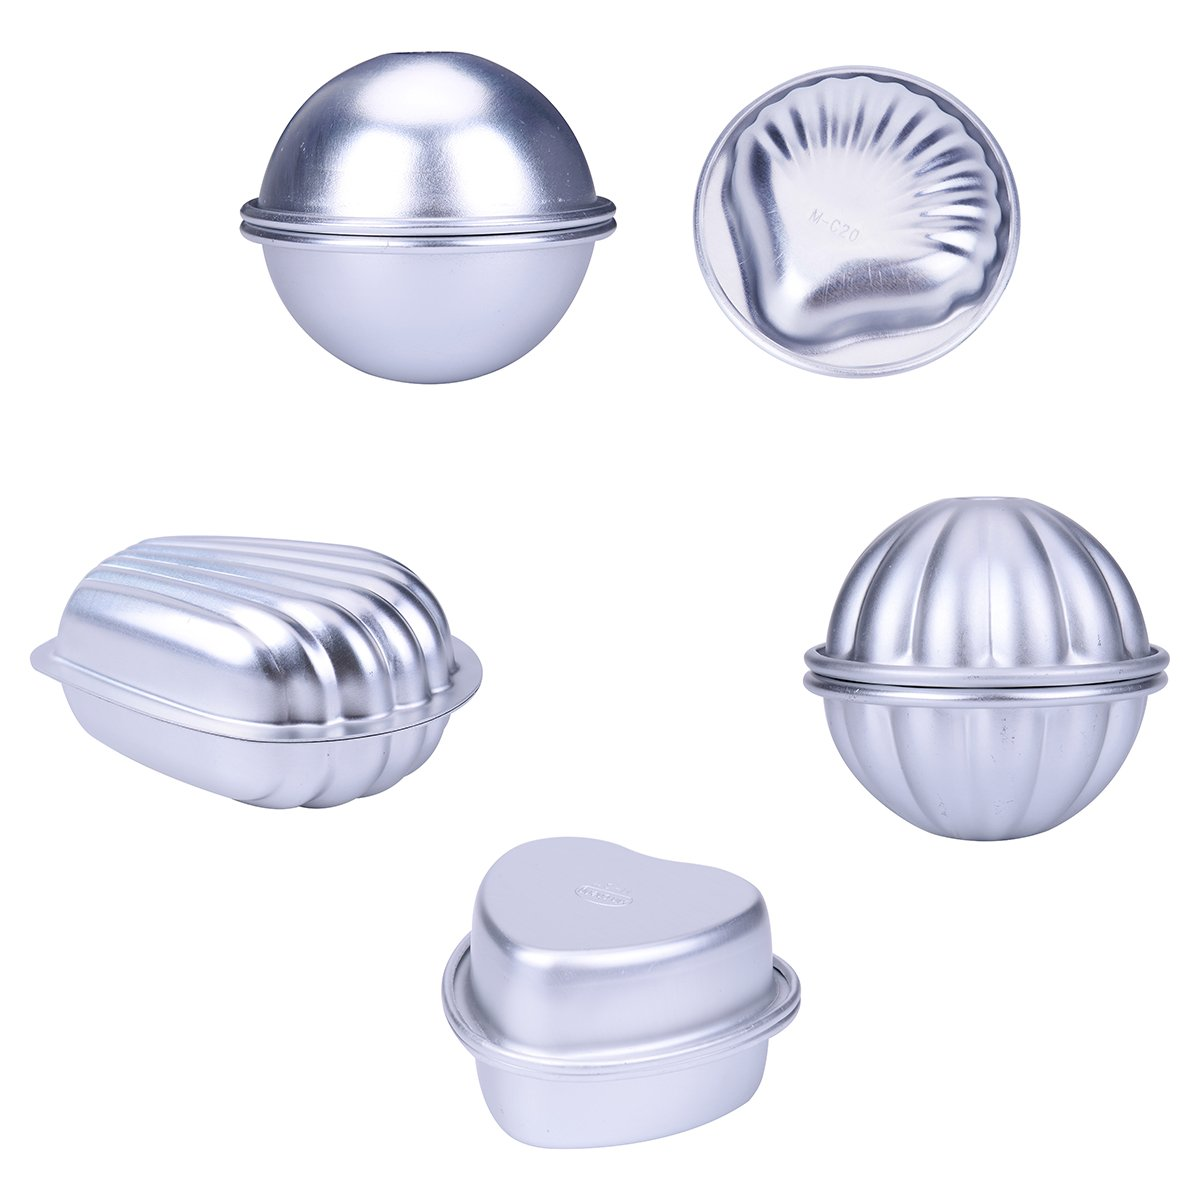 BS DIY Metal Bath Bomb Molds, Bath Bomb Making Kits 8 Pieces, Mini Sealer for Cake Making, Handmade Soaps and Crafts